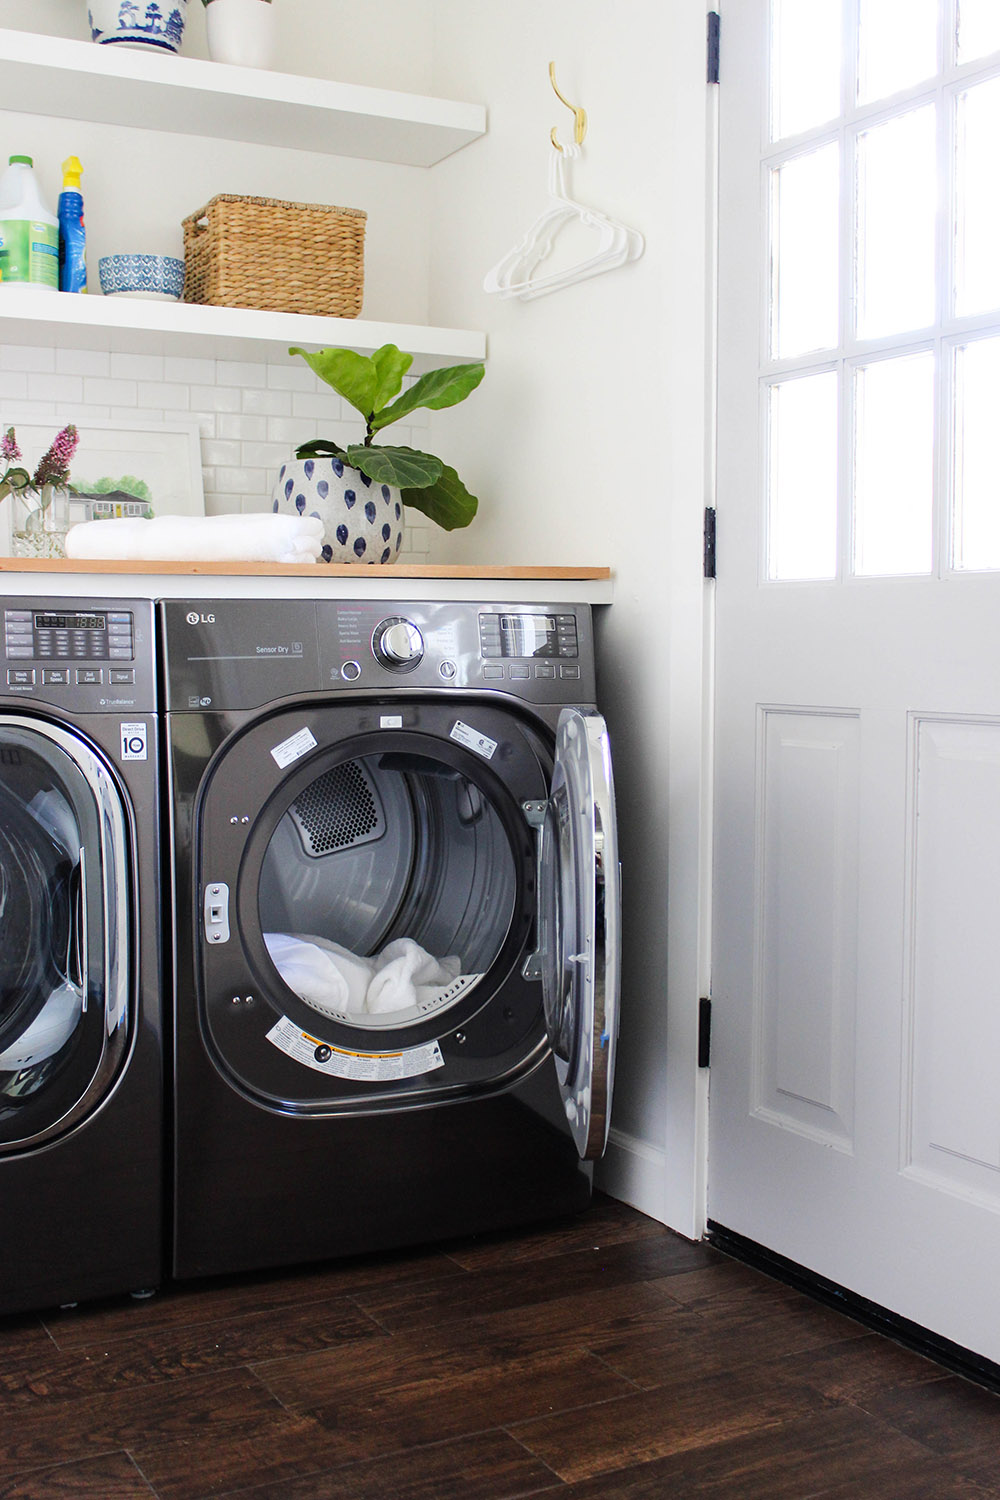 A black LG front load dryer with its door open.